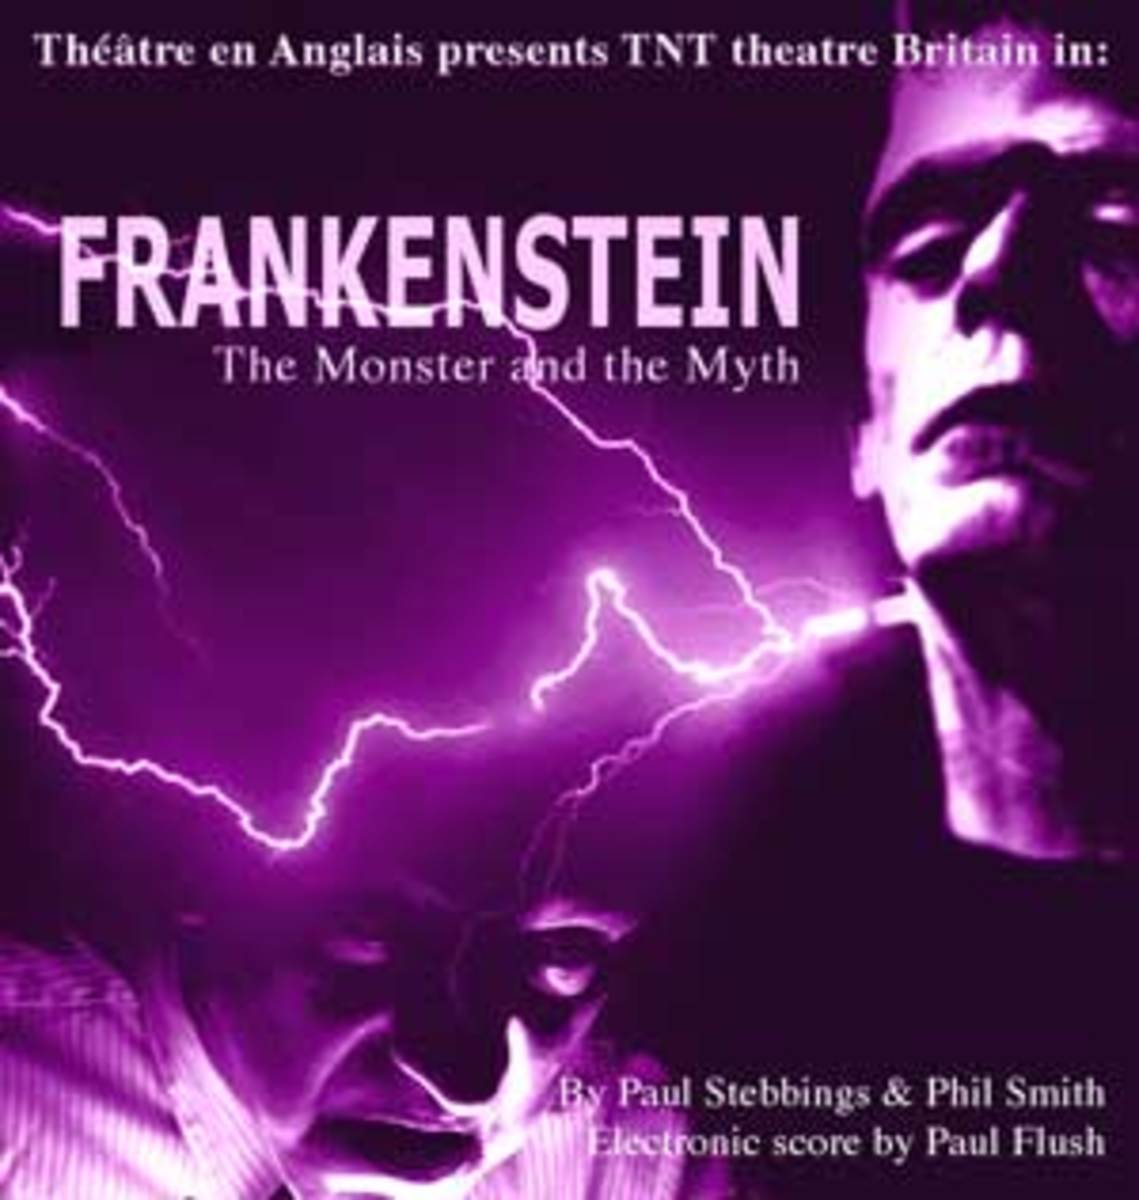 the-secret-of-life-the-role-of-science-in-mary-shelleys-frankenstein